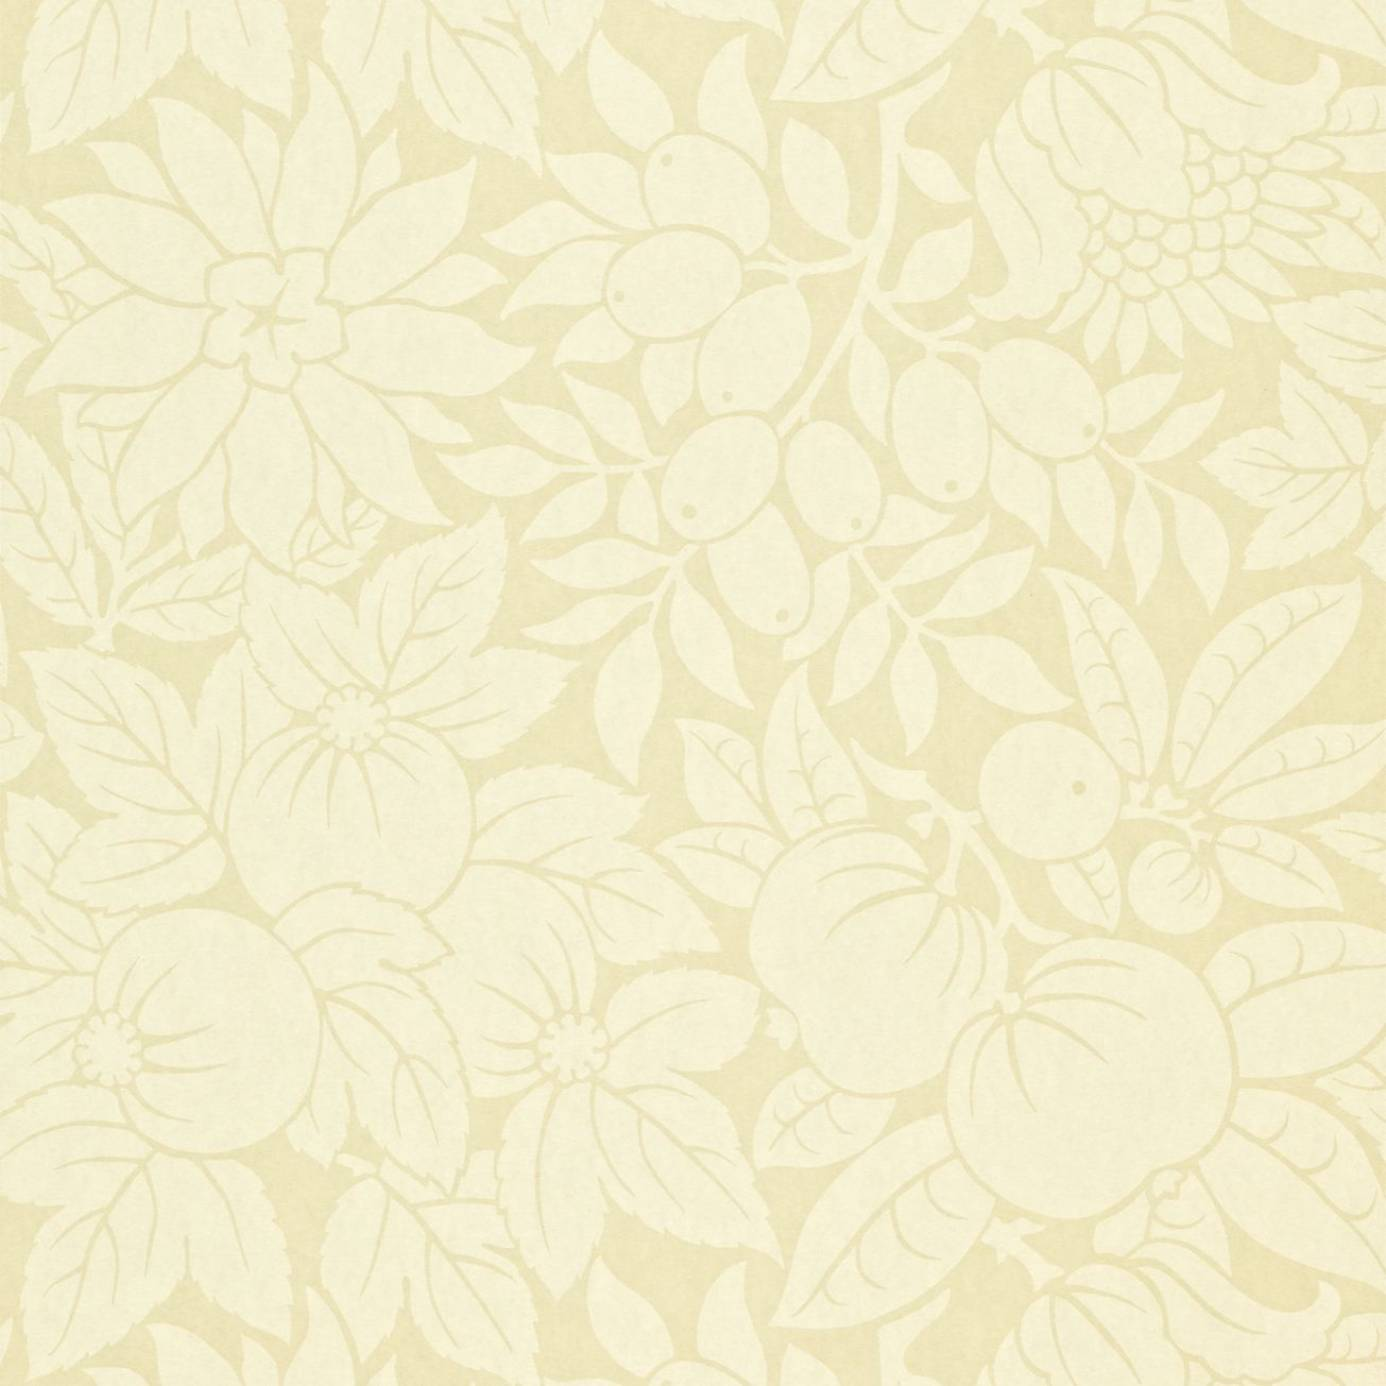 Copacabana wallpaper cream dopwcp103 sanderson for Cheap plain white wallpaper